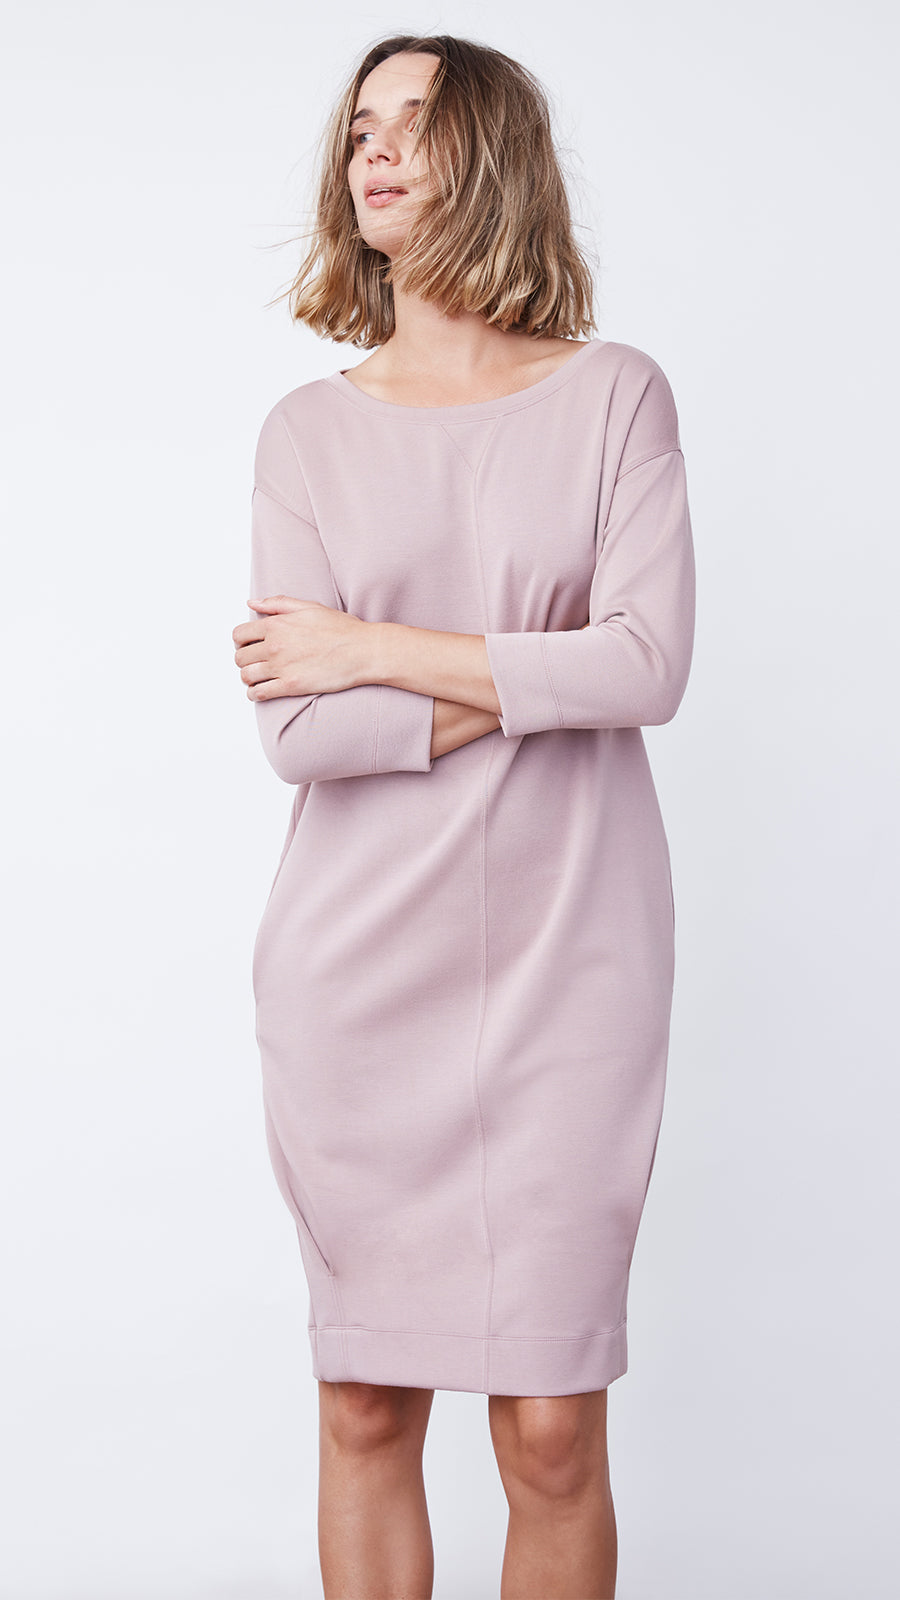 Modal Jersey Wedge Dress in Dusty Blush - Women's Apparel | b New York